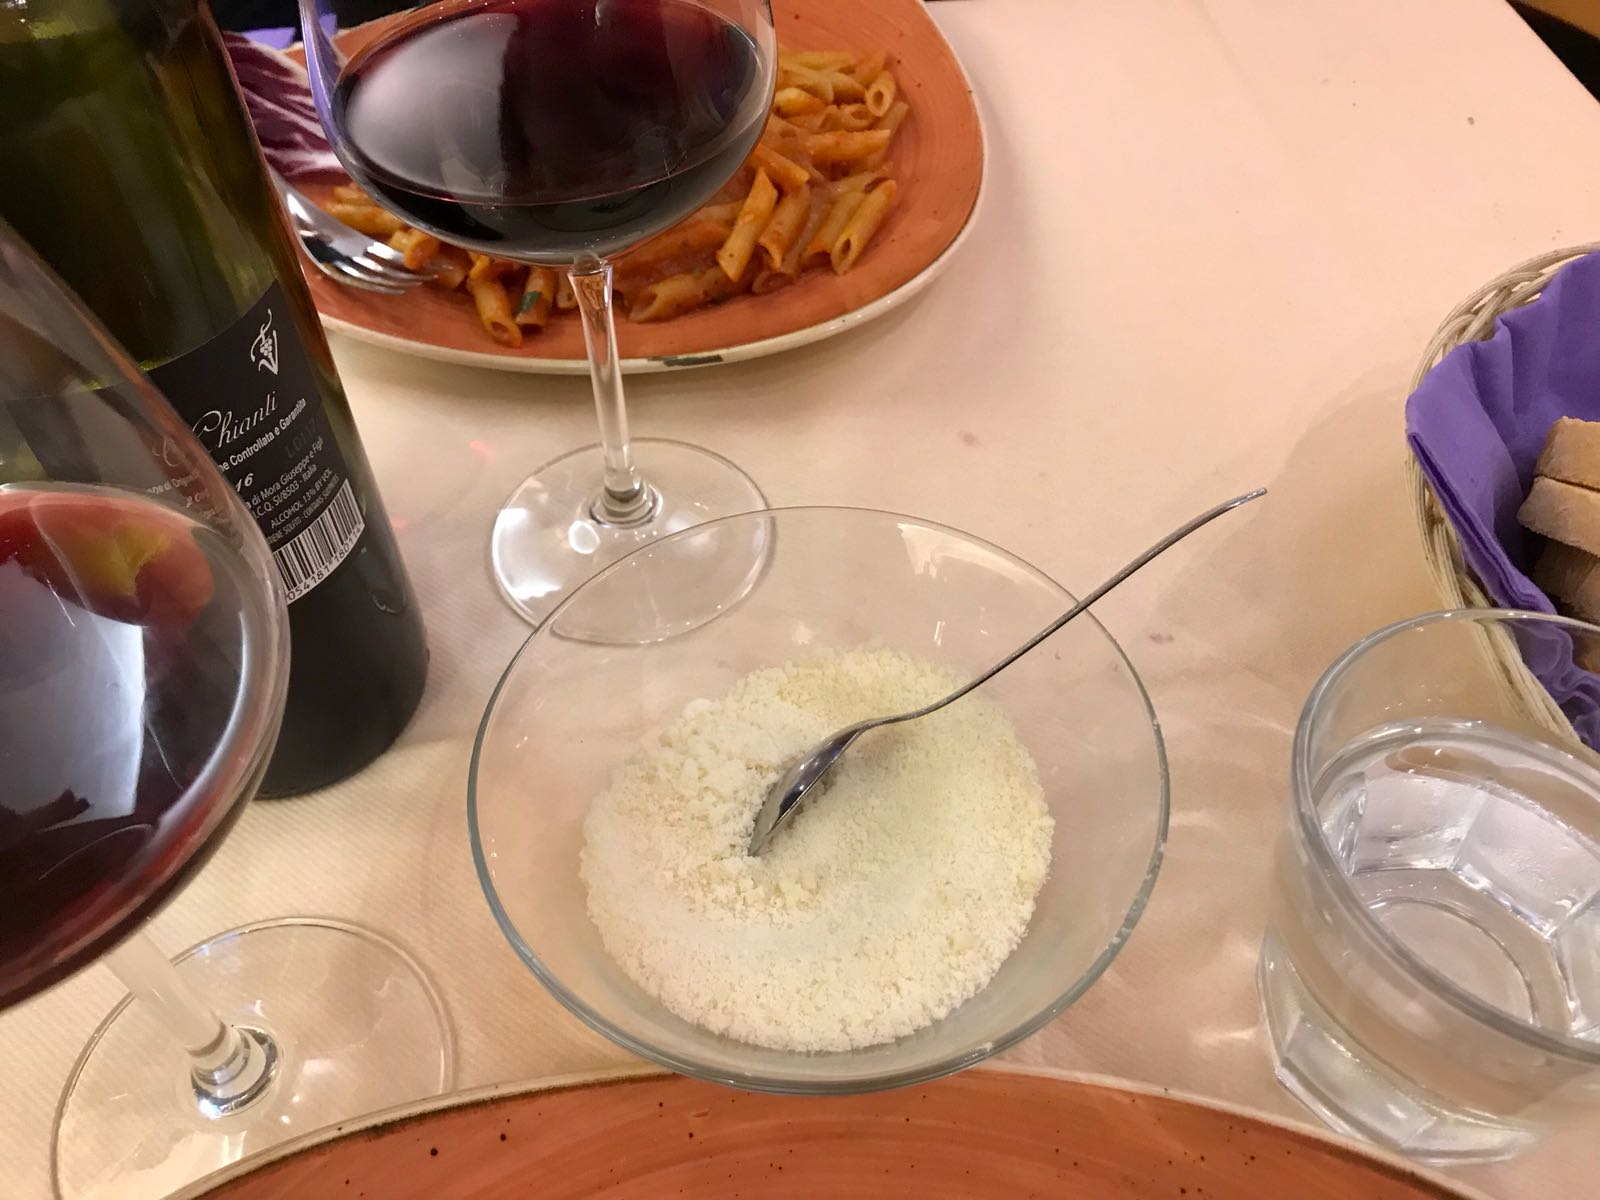 A bowl of parmesan on our dinner table between two glasses of wine